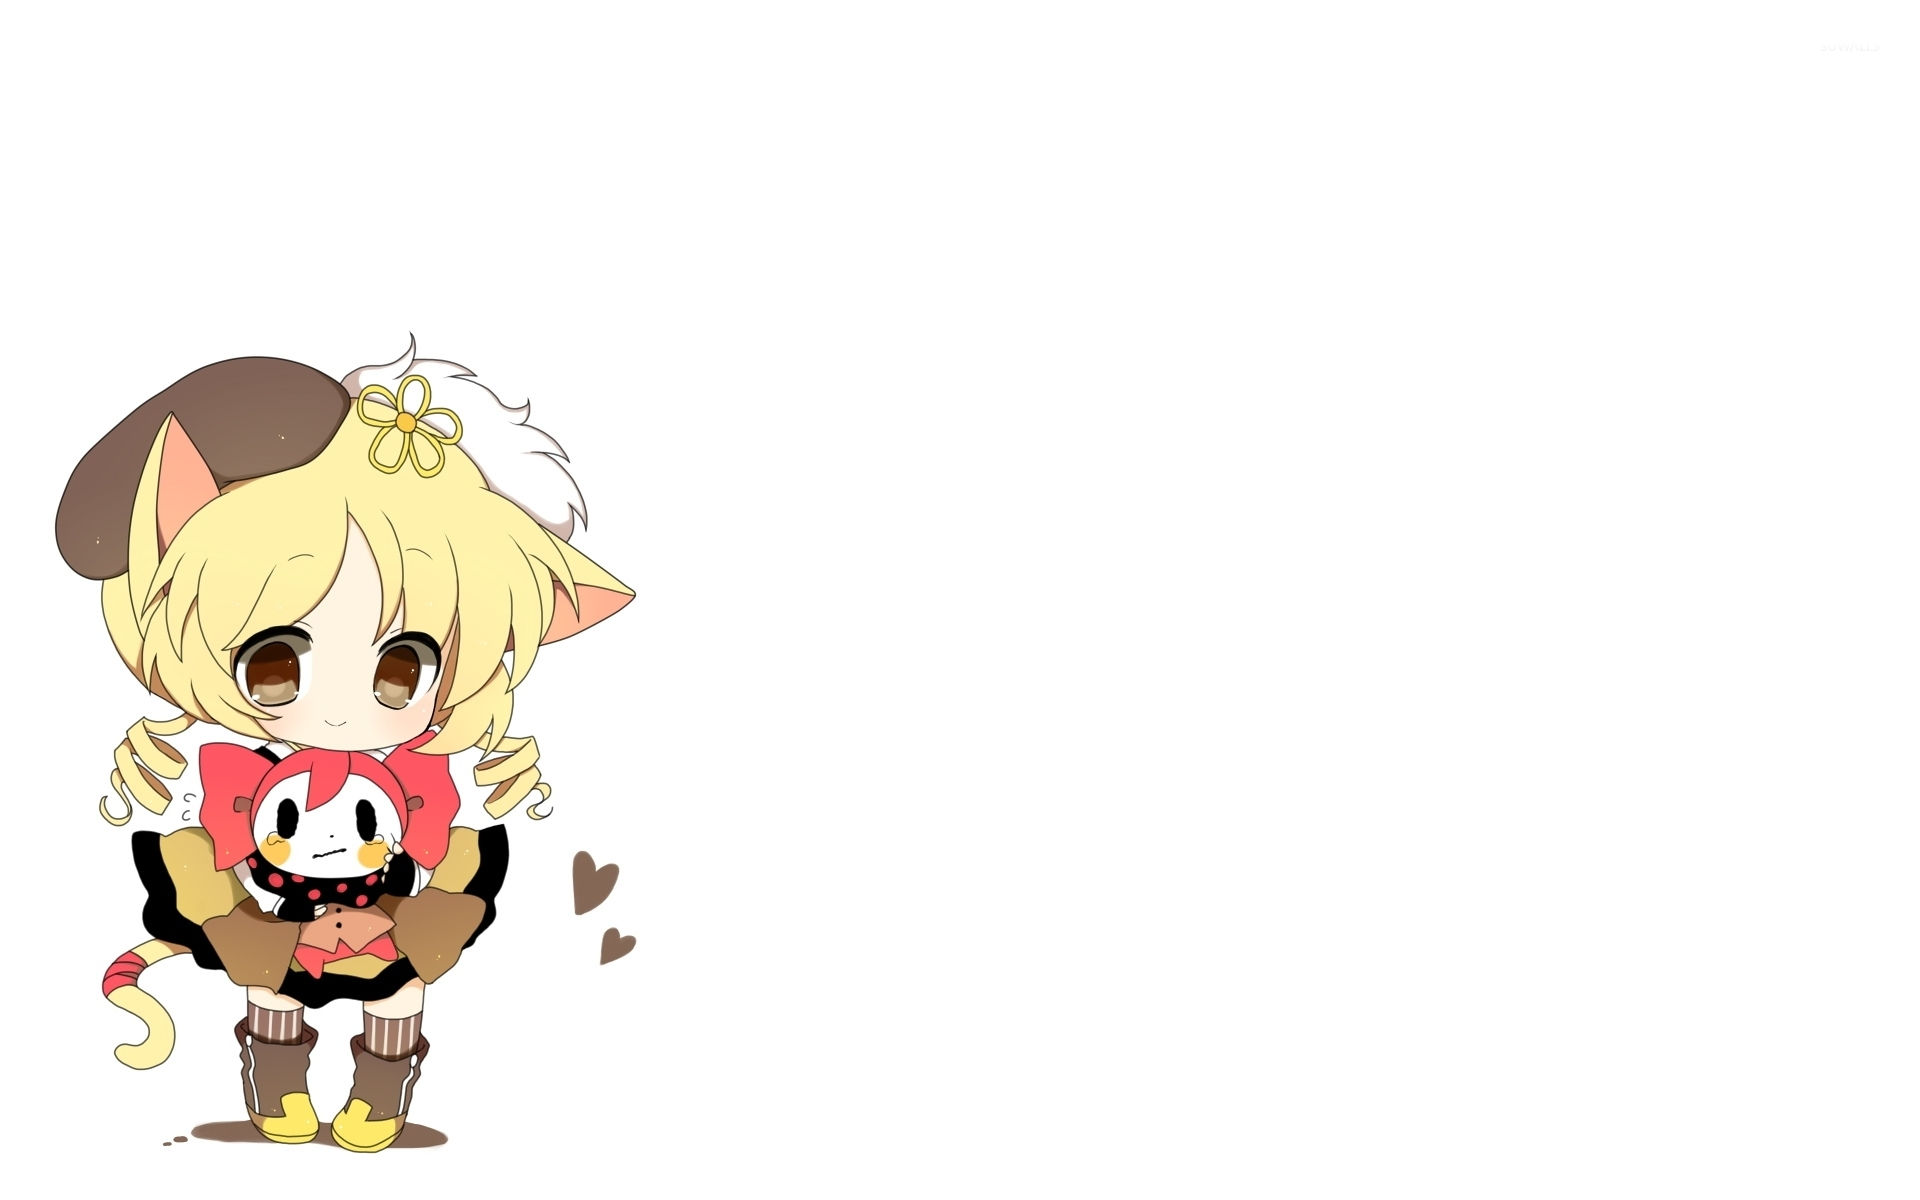 Mami Tomoe With Animal Ears Puella Magi Madoka Magica Wallpaper Anime Wallpapers 54496